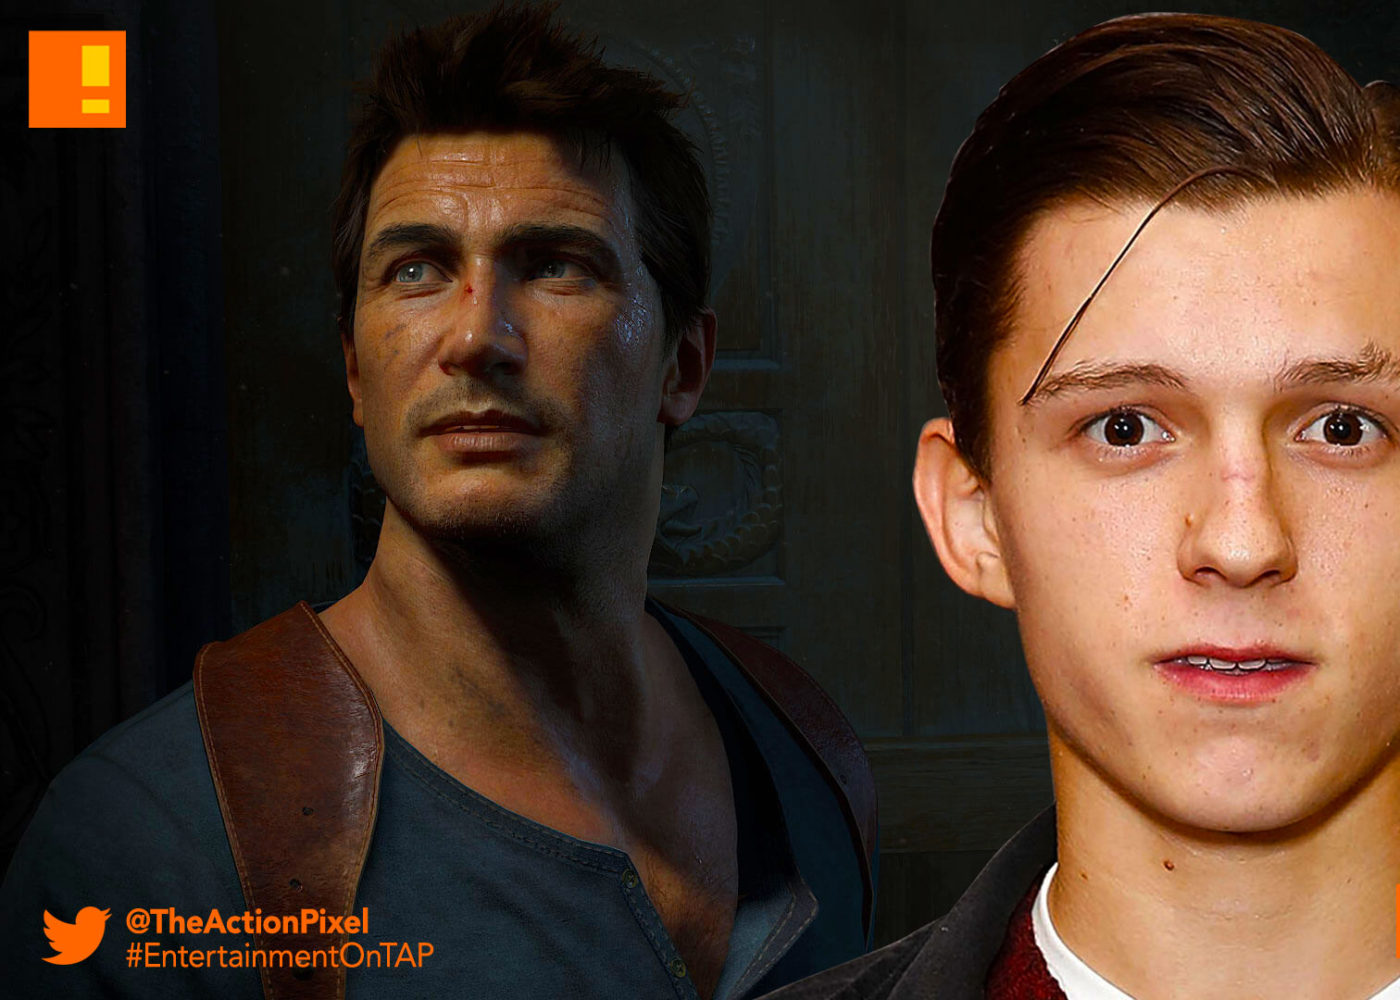 tom holland, sony pictures, marvel, naughty dog, casting,script rewrite, Nathan drake, the action pixel, entertainment on tap,